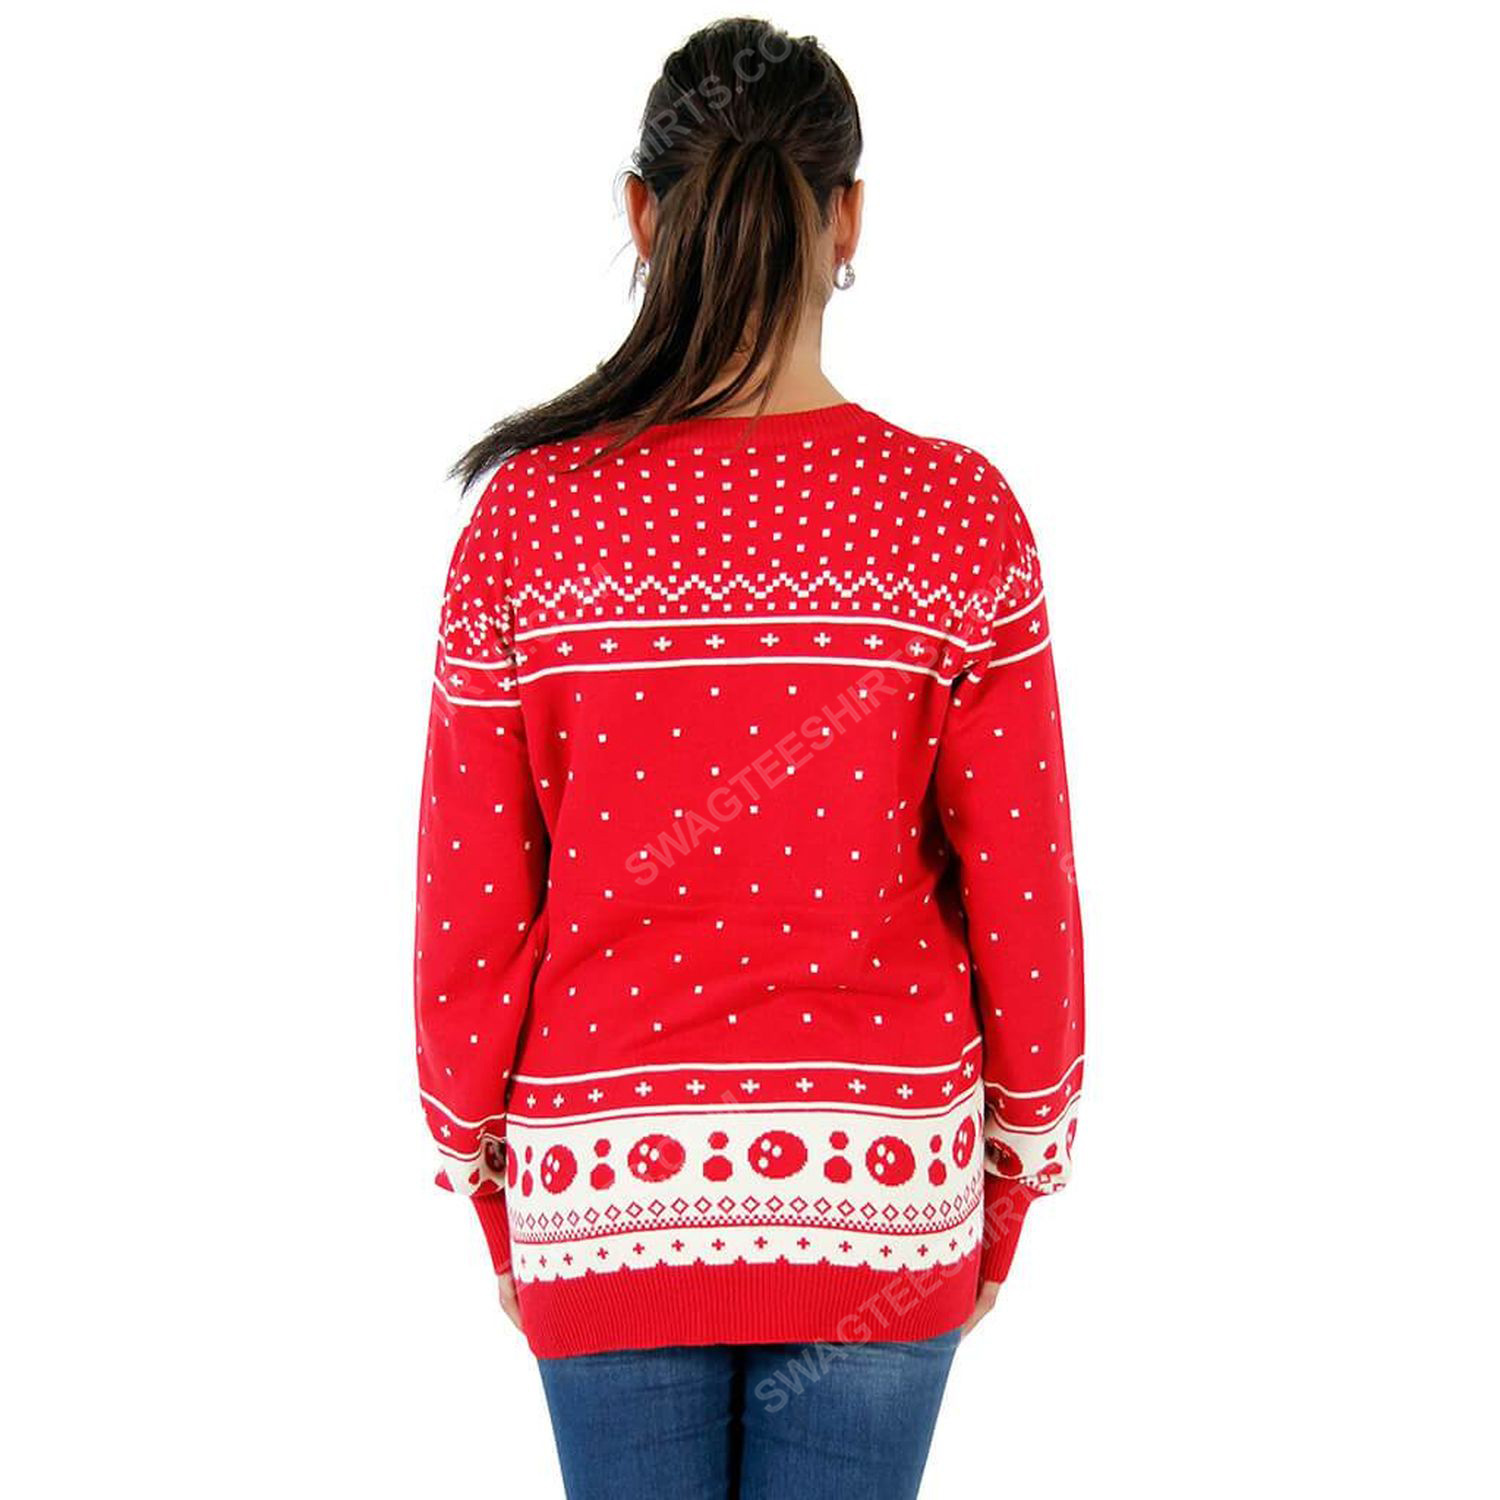 The big lebowski the dude abides full print ugly christmas sweater 3 - Copy